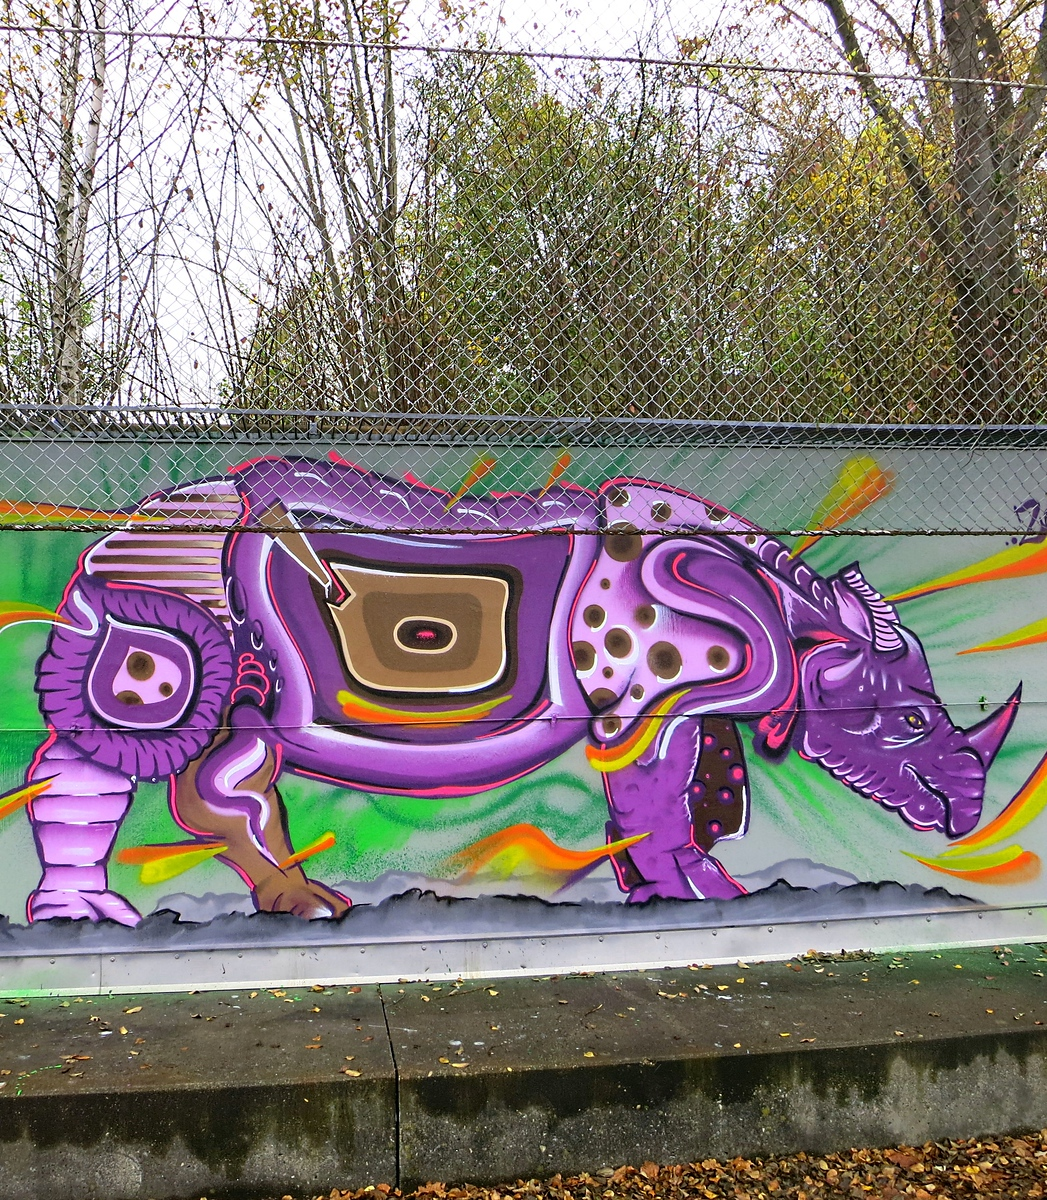 Street Art Chat Interview with Kosmik One - Who is your favorite street artist and why